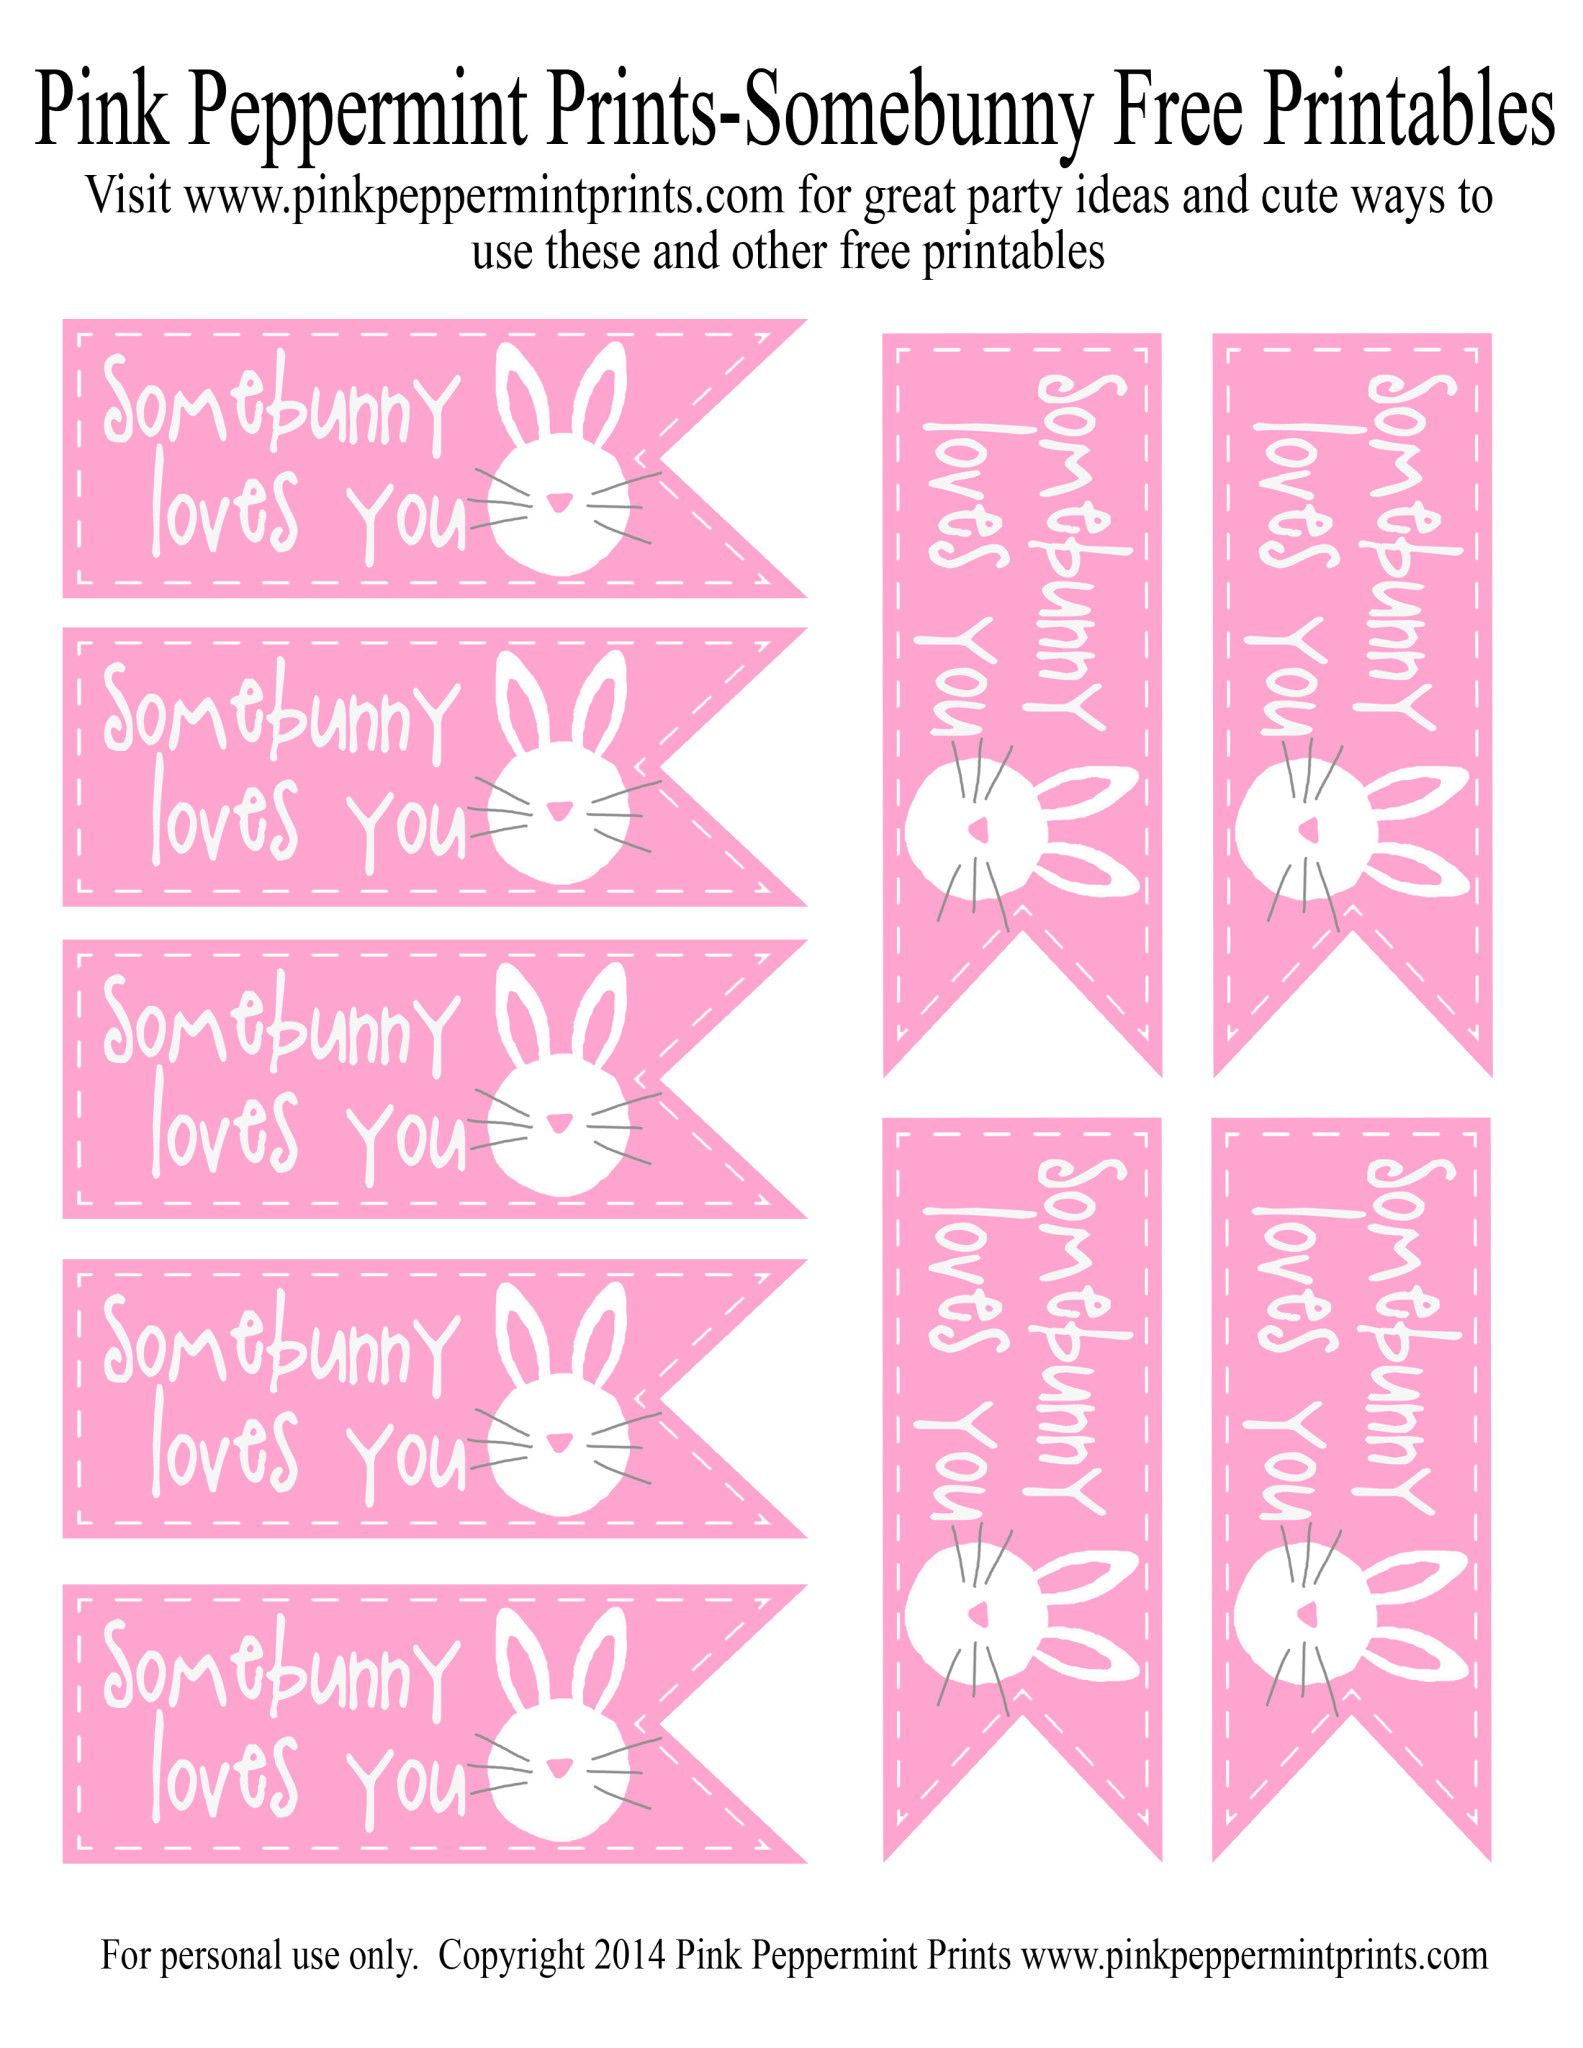 Free printable easter egg hunt party favor somebunny loves you free printable easter egg hunt party favor somebunny loves you negle Choice Image